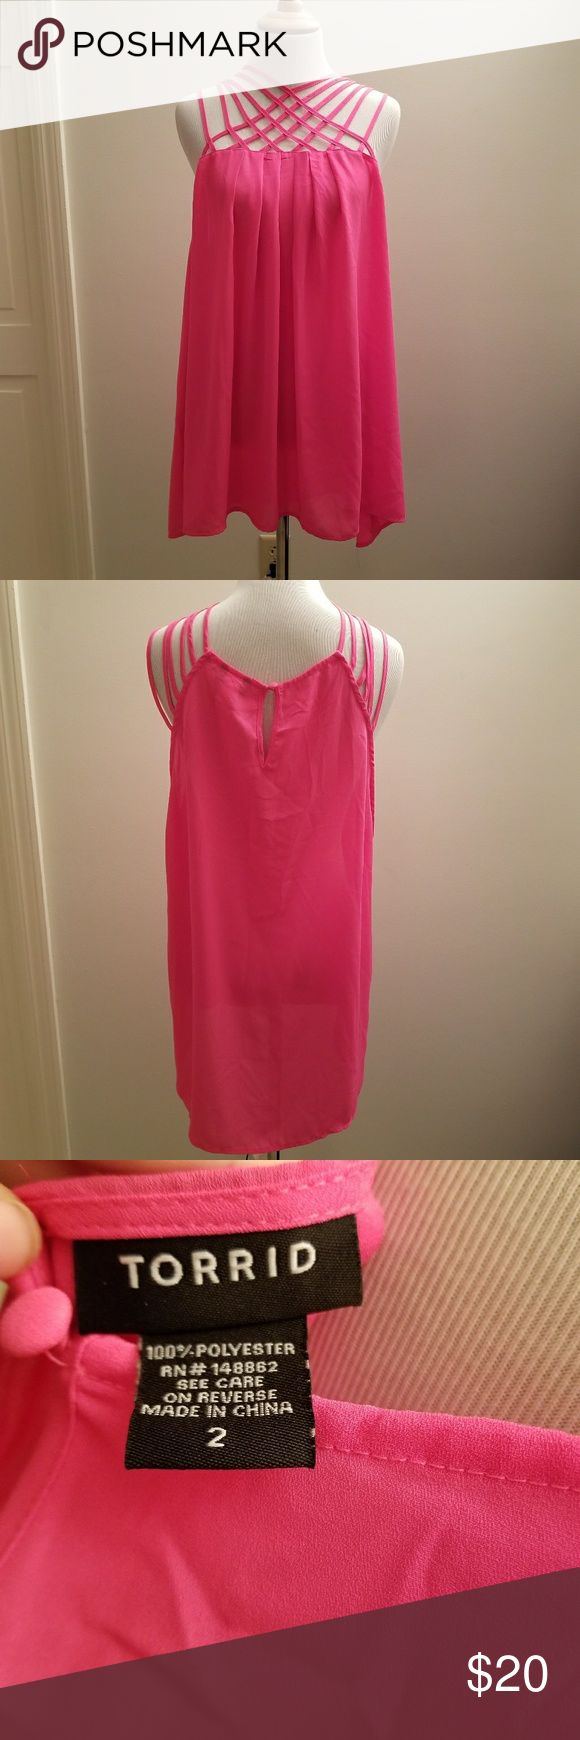 Torrid Hot Pink Strappy Top Size 2 NWOT Condition: New without tags  Brand: Torrid Color: Hot Pink Size: 2  New without tags. Gorgeous hot pink strappy top. Criss crossed front adds a beautiful touch. Can be dressed up or down. torrid Tops